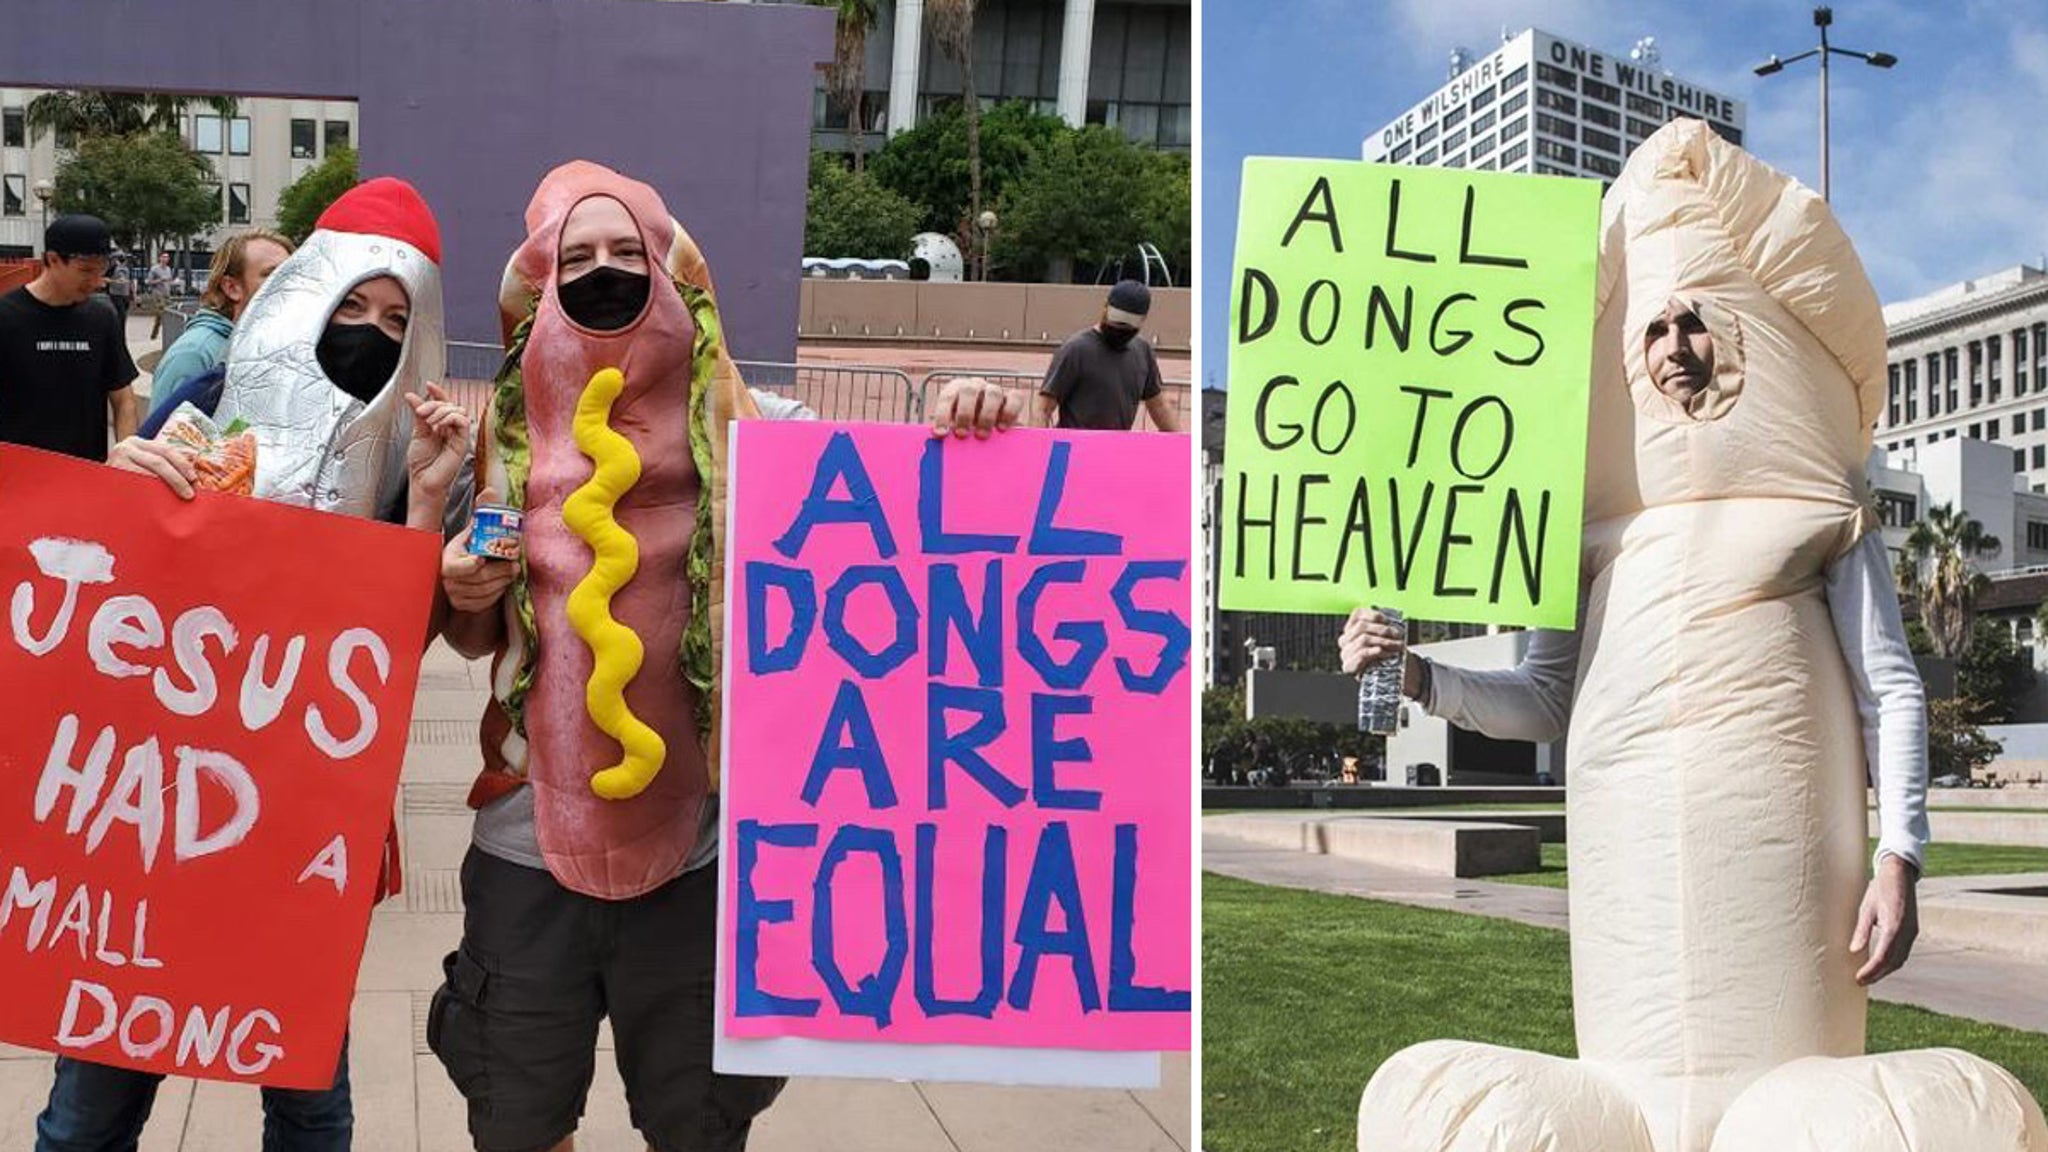 Small Dong March Through Los Angeles Seeks To End Small Penis Shame - tmz.com